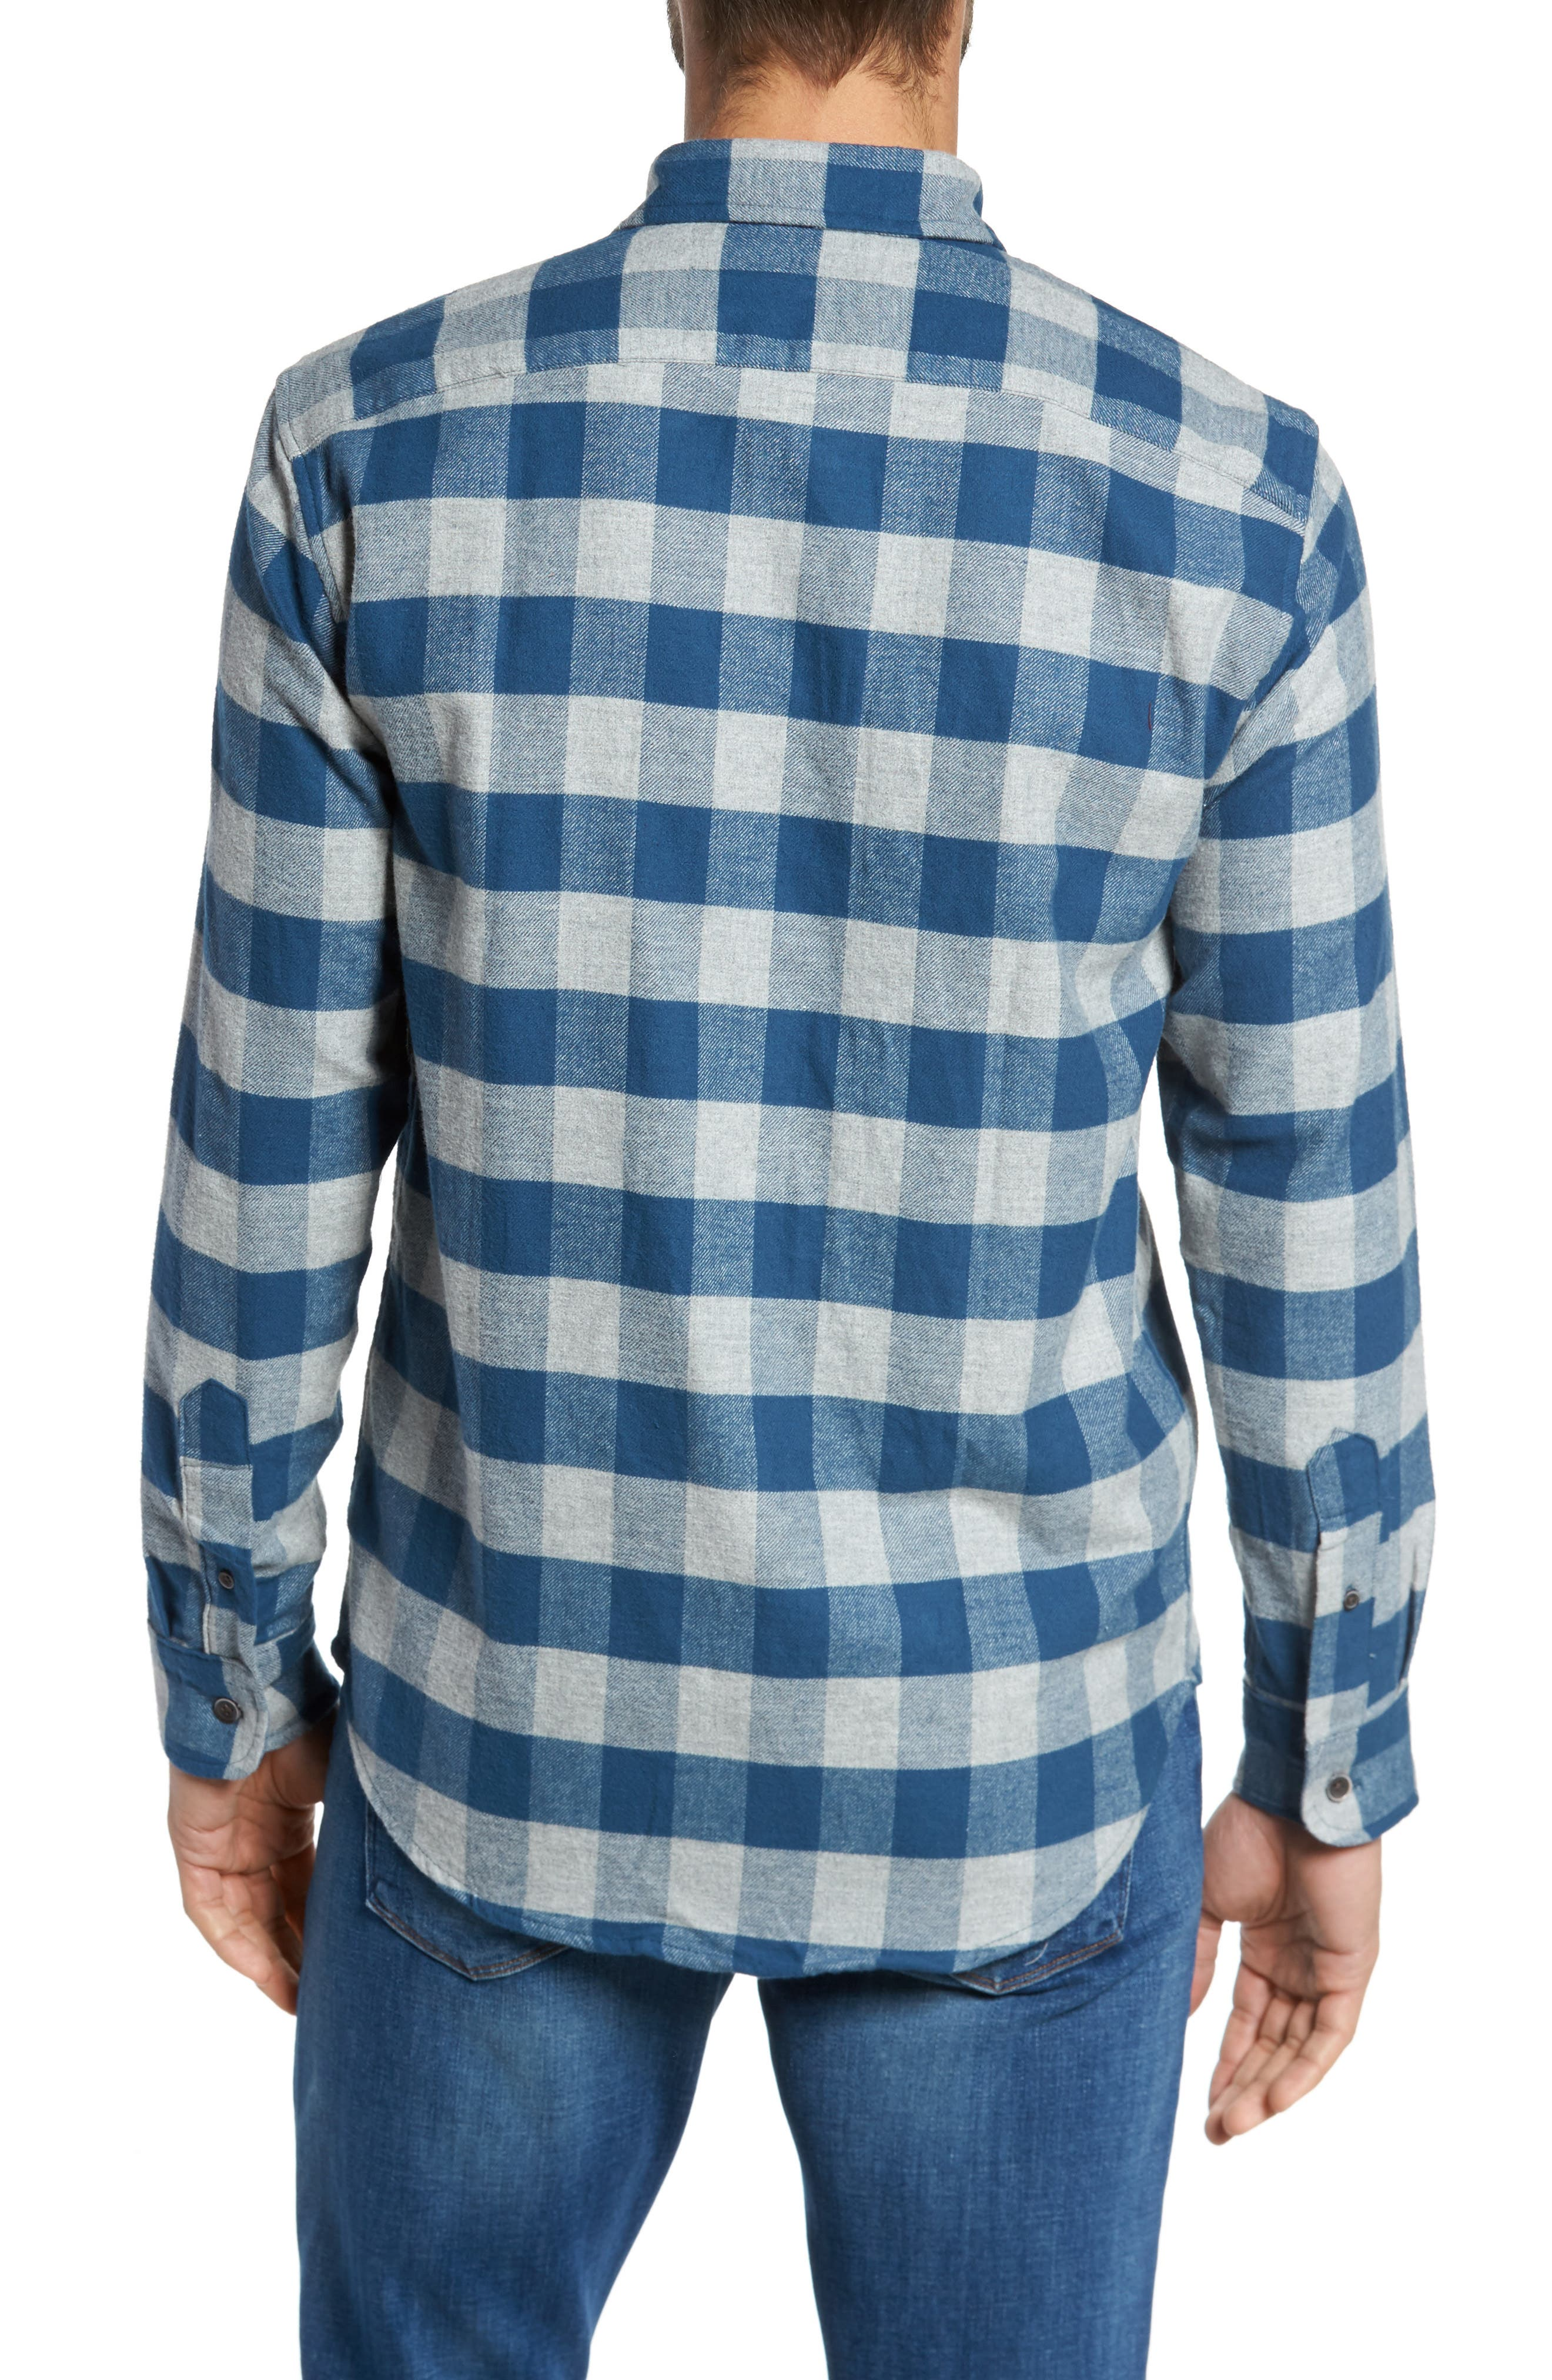 Buffalo Check Flannel Shirt,                             Alternate thumbnail 2, color,                             Teal/ Med Grey Heather